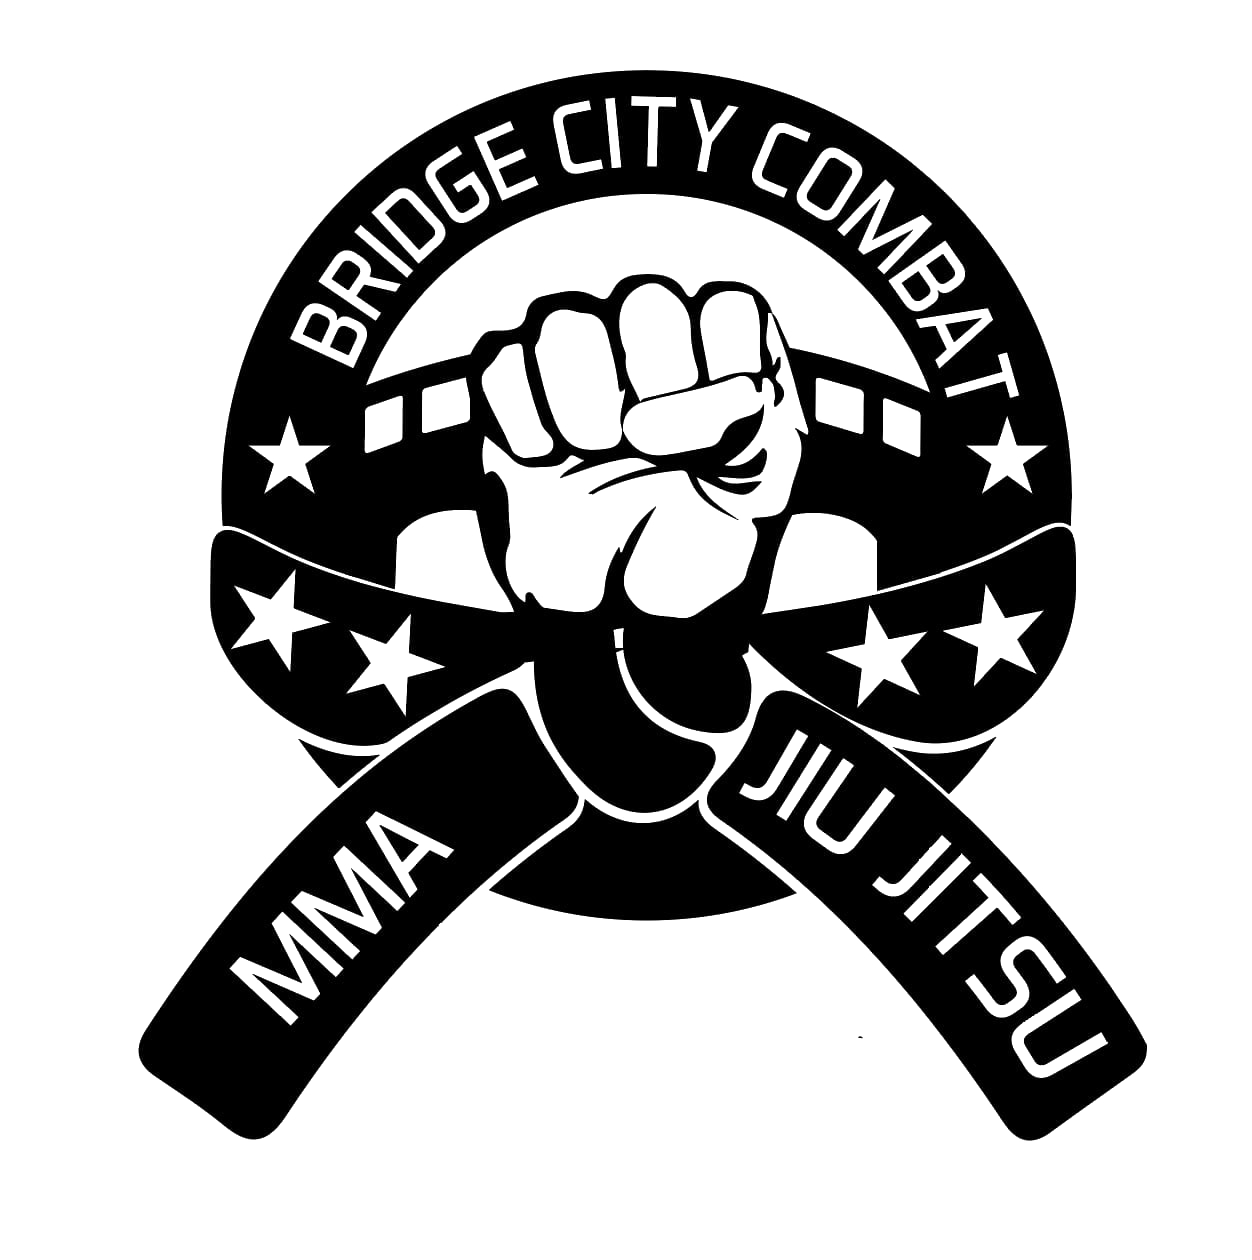 Bridge City Combat LLC